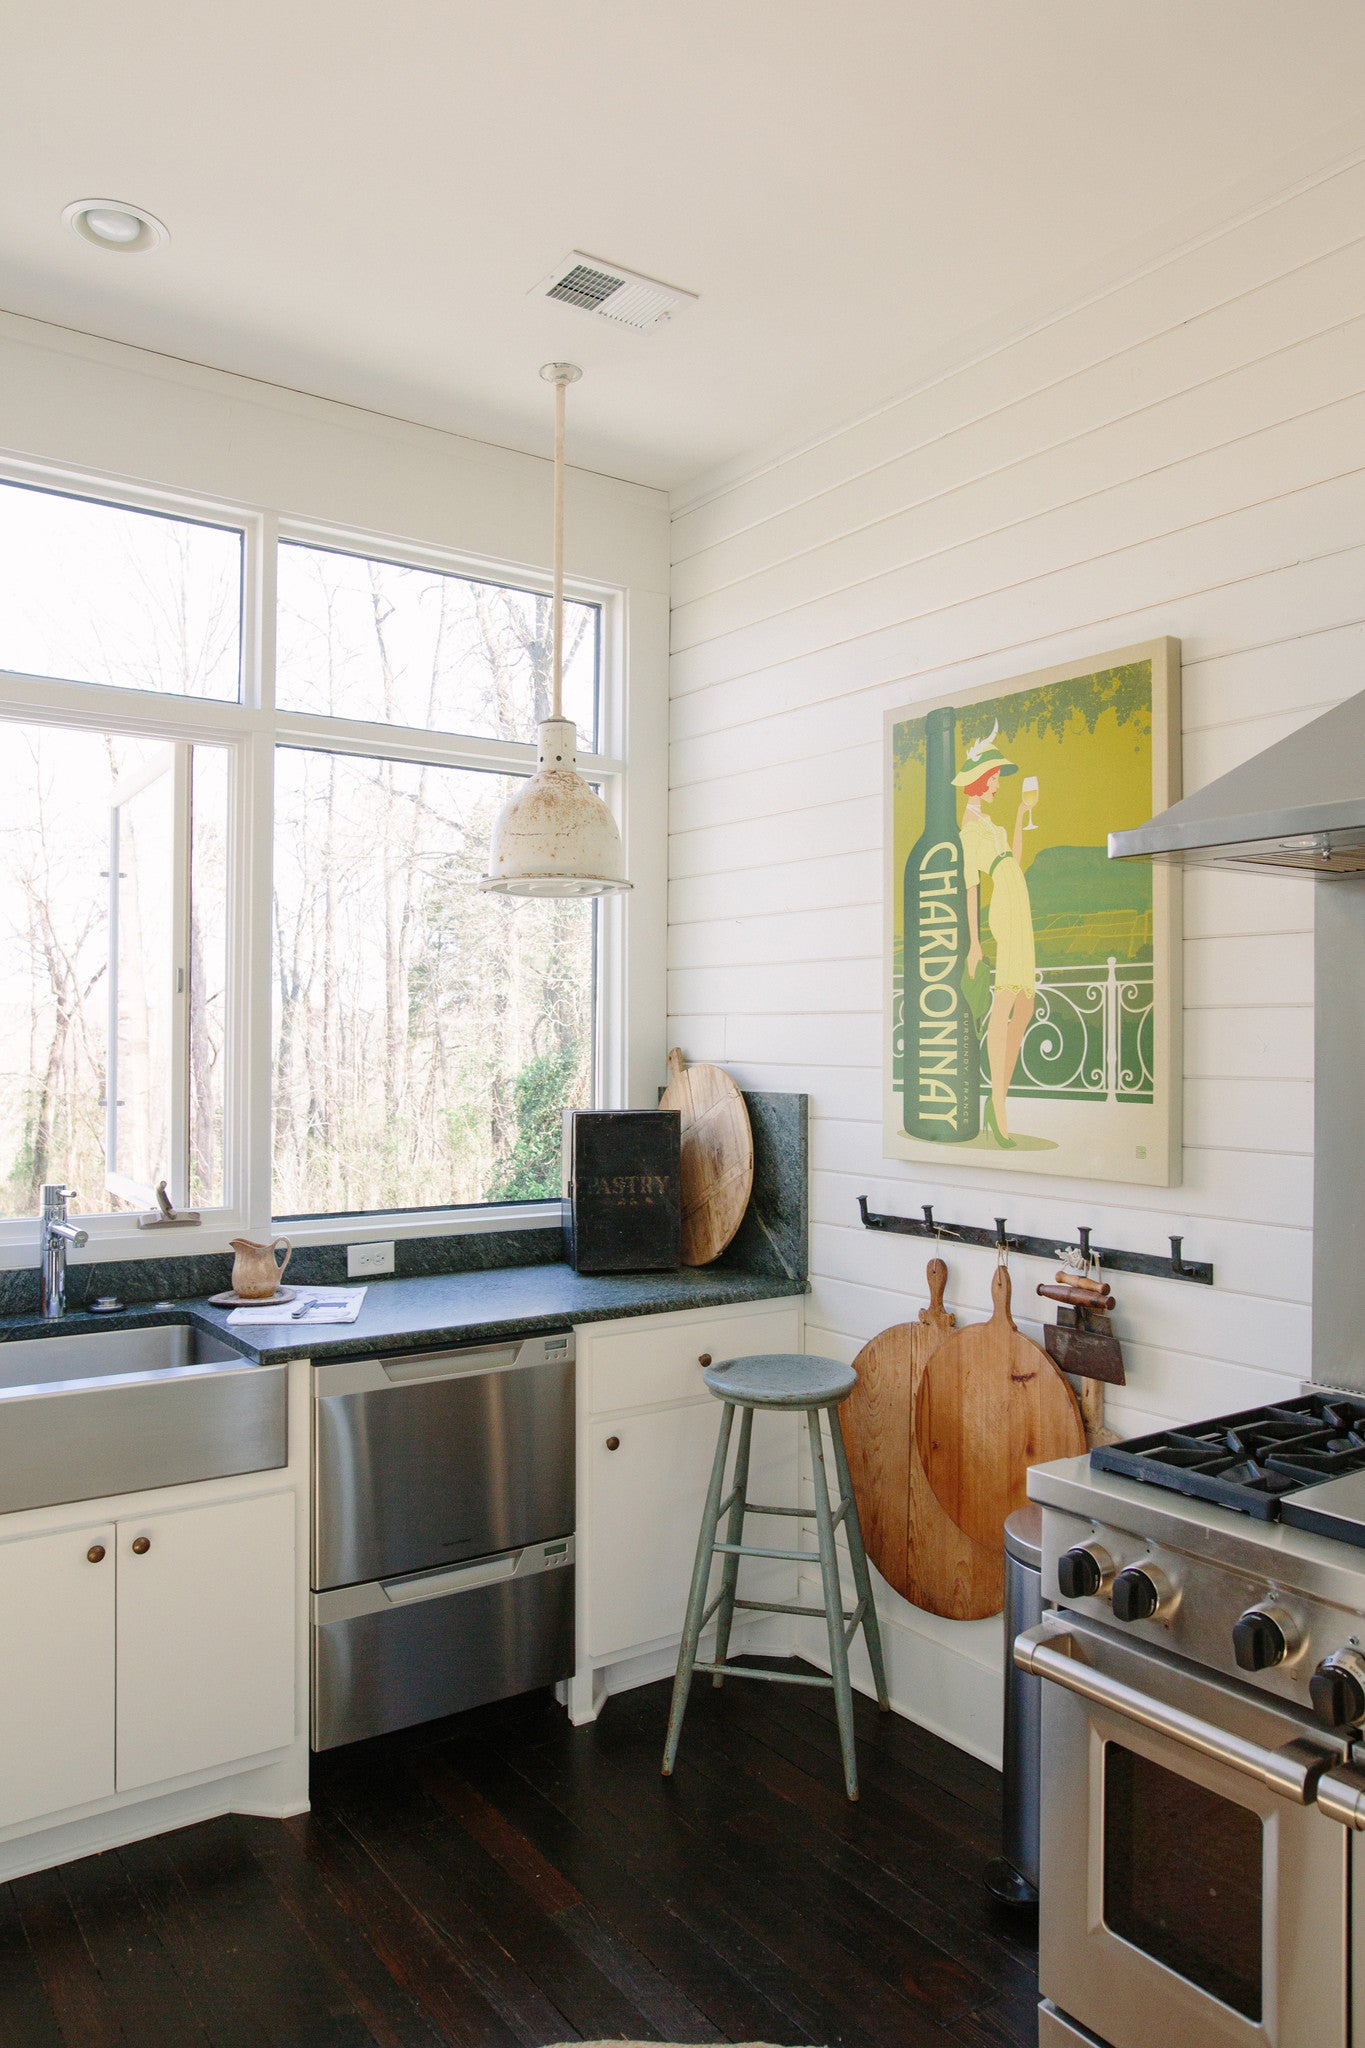 Designing Your Space Kitchen Edition – Anderson Design Group